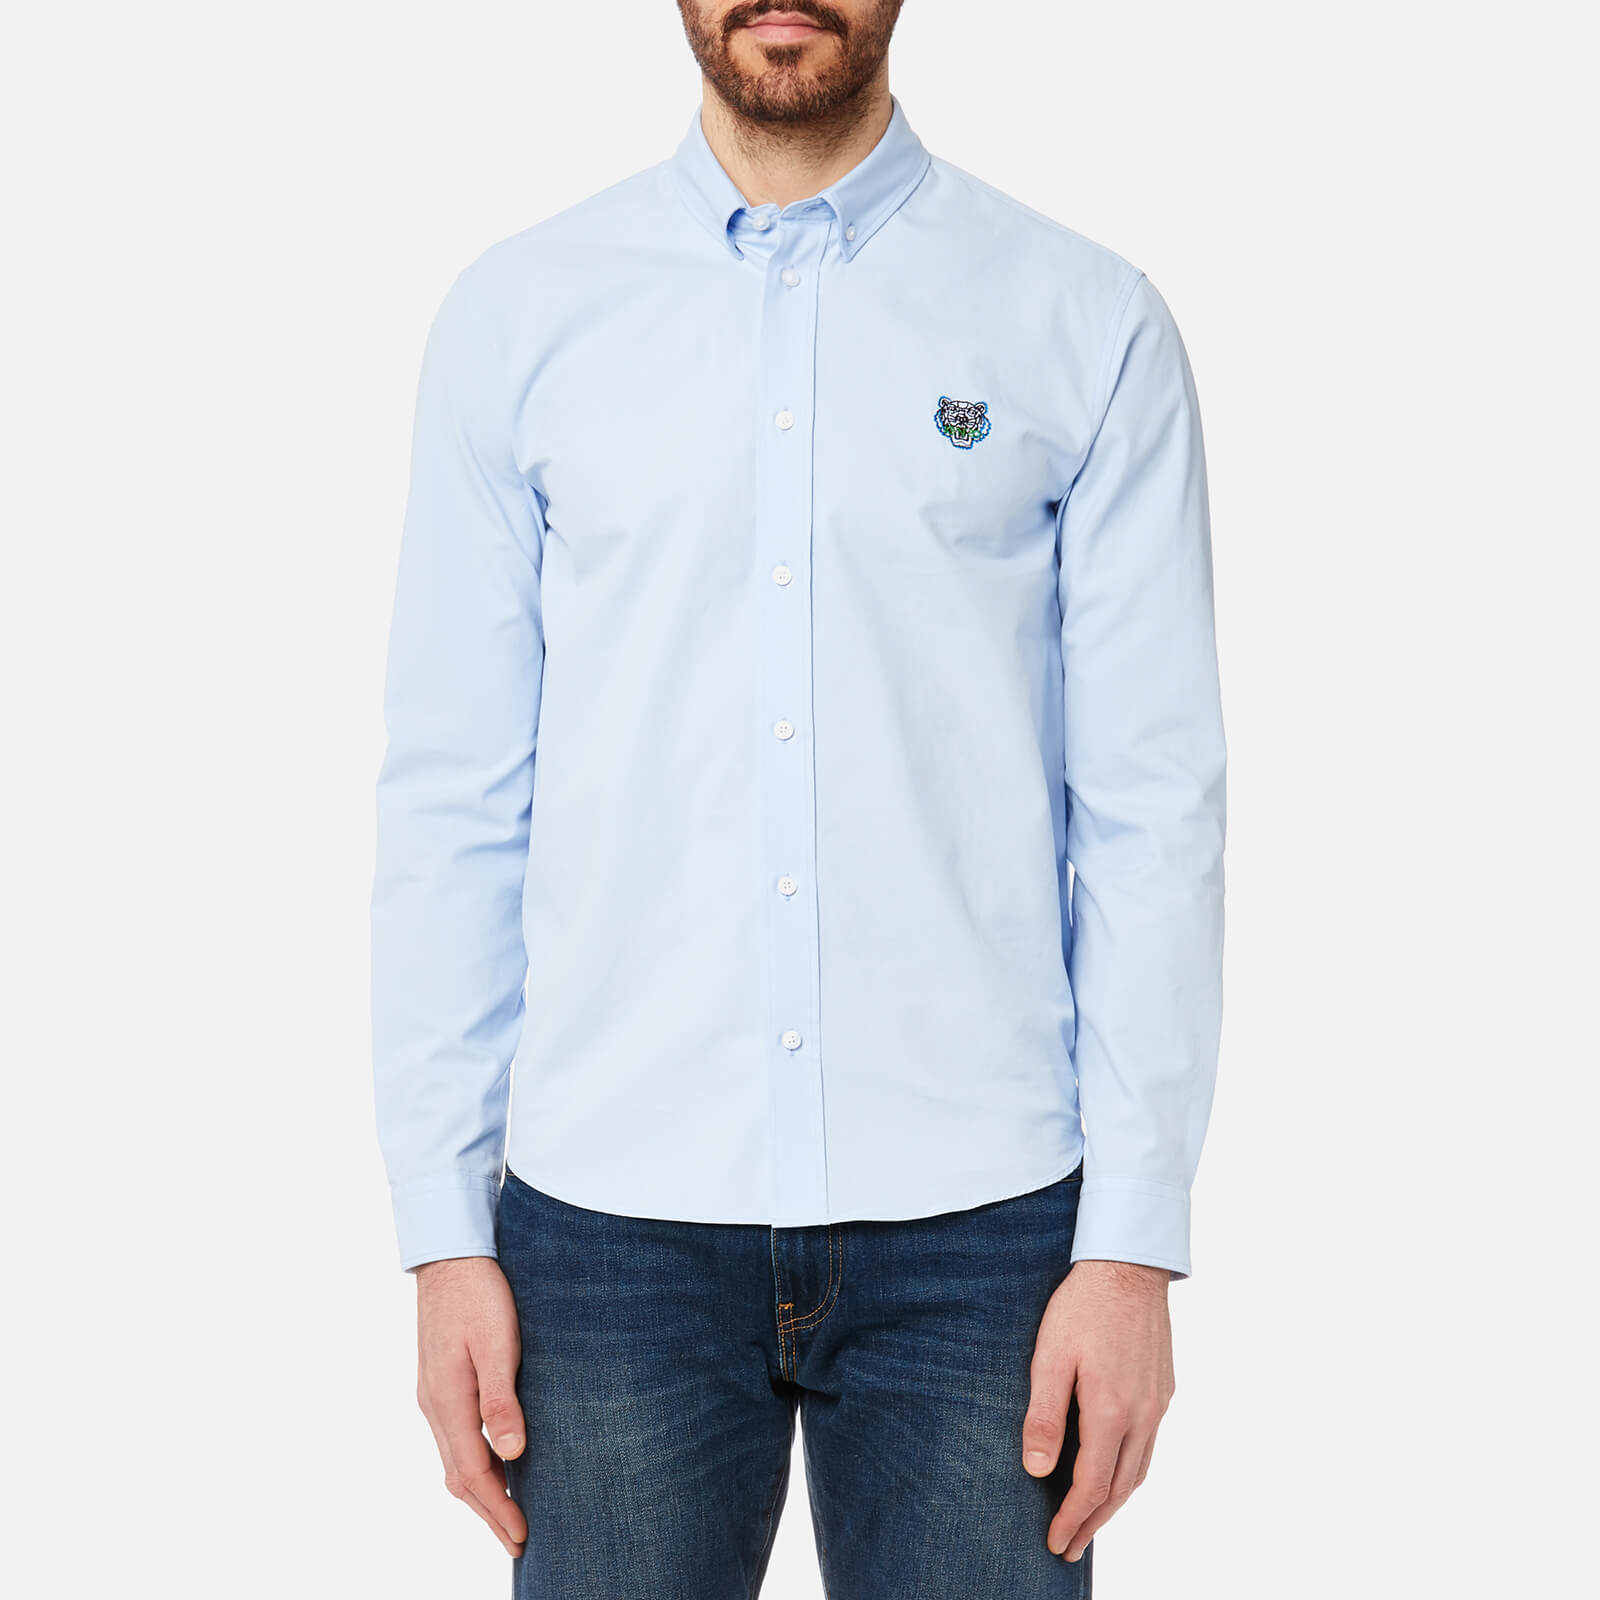 069cf159 KENZO Men's Tiger Crest Casual Fit Oxford Shirt - Light Blue - Free UK  Delivery over £50